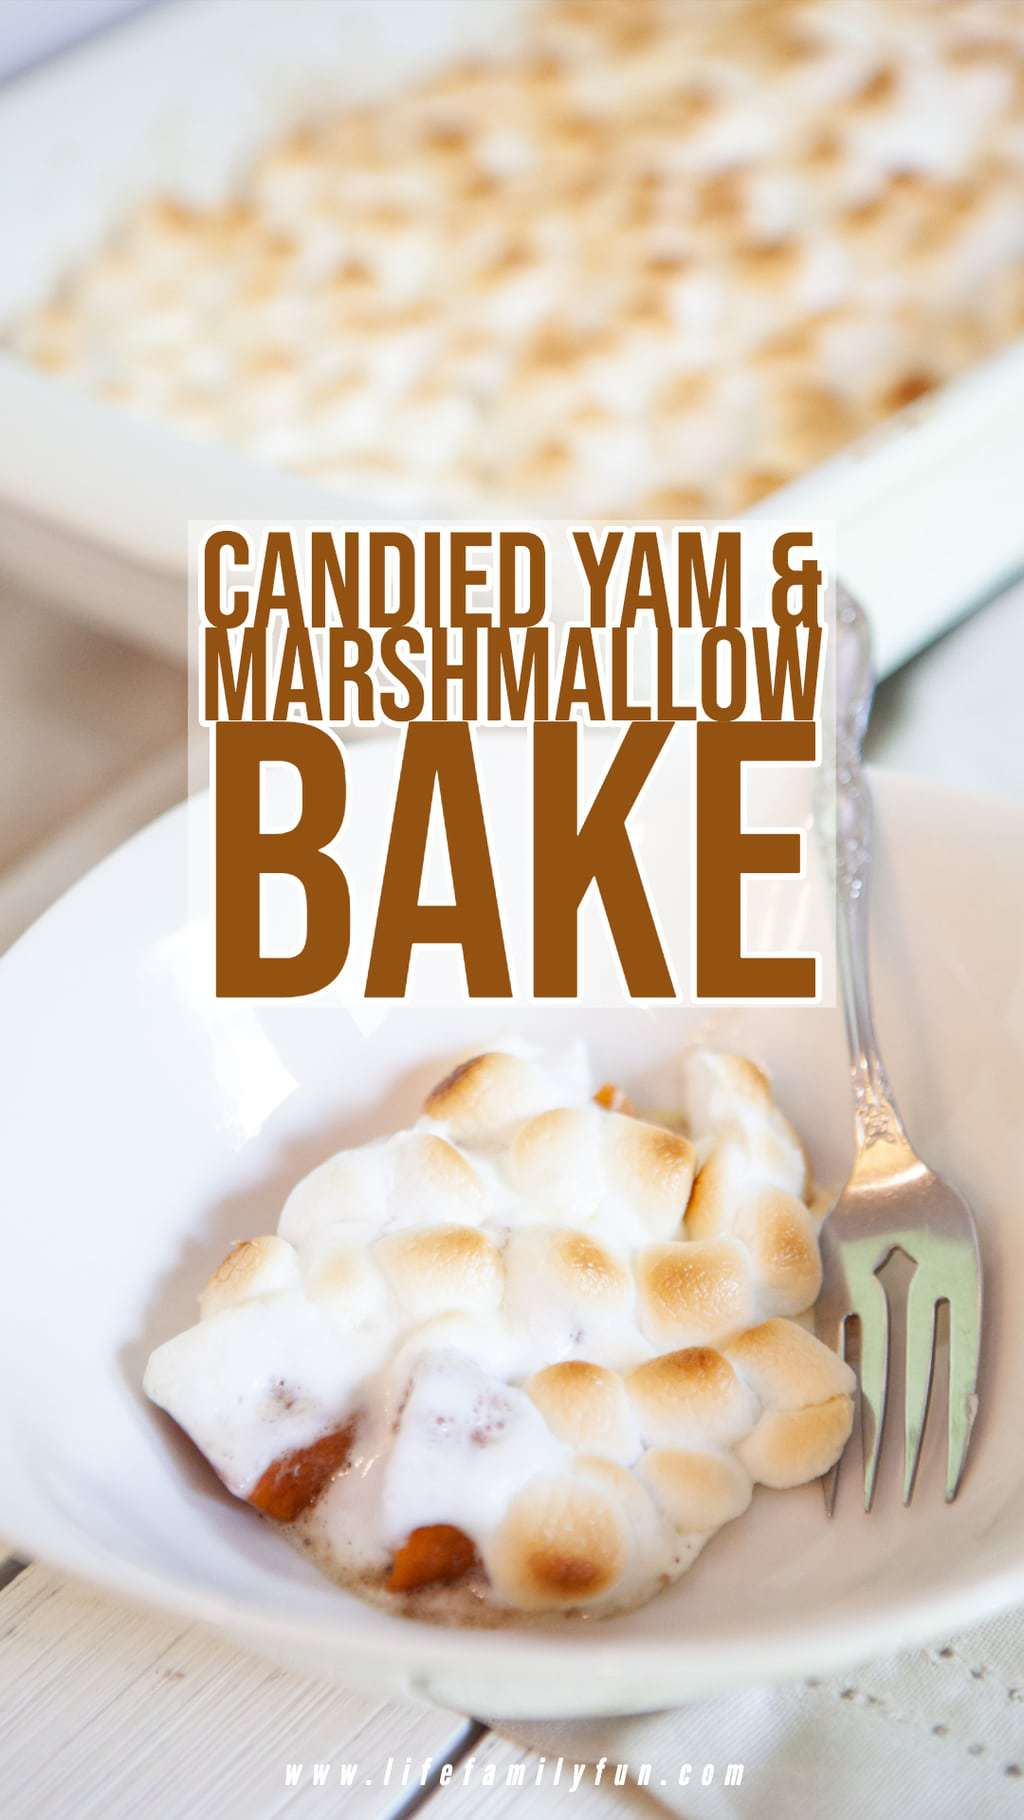 Candied yam and marshmallow bake